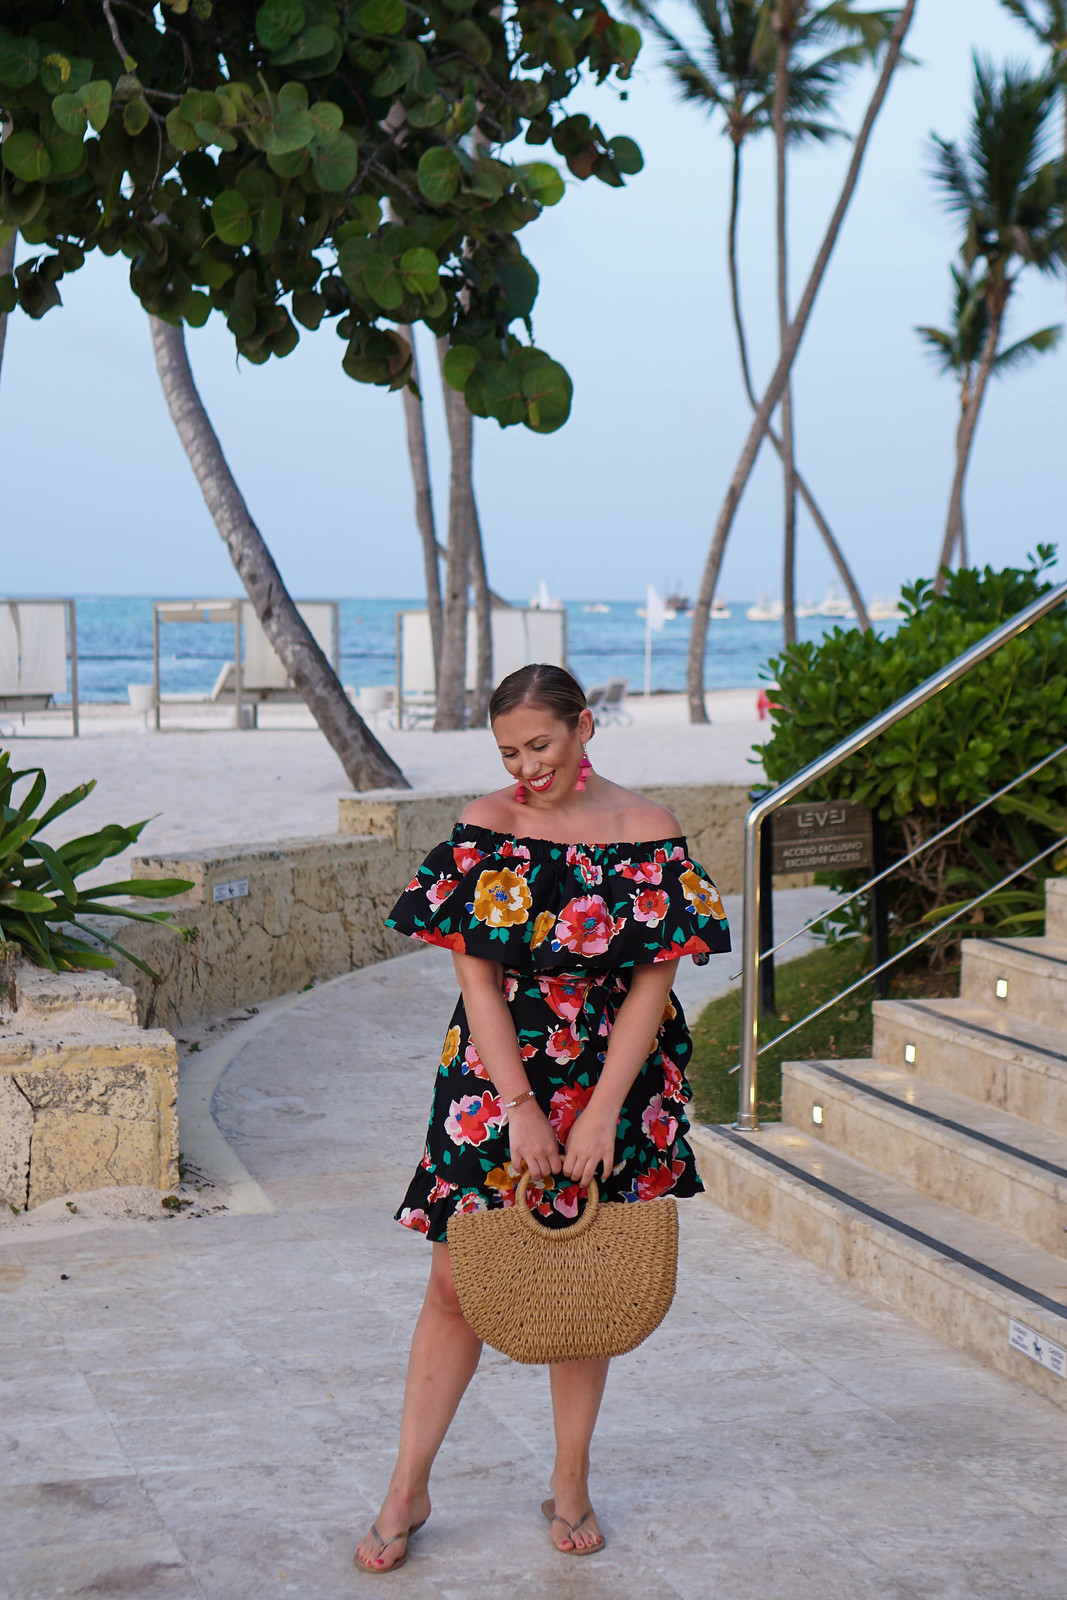 Who What Wear Target Floral Off Shoulder Dress Tropical Vacation Outfit Punta Cana Holiday Summer Palm Trees Beach